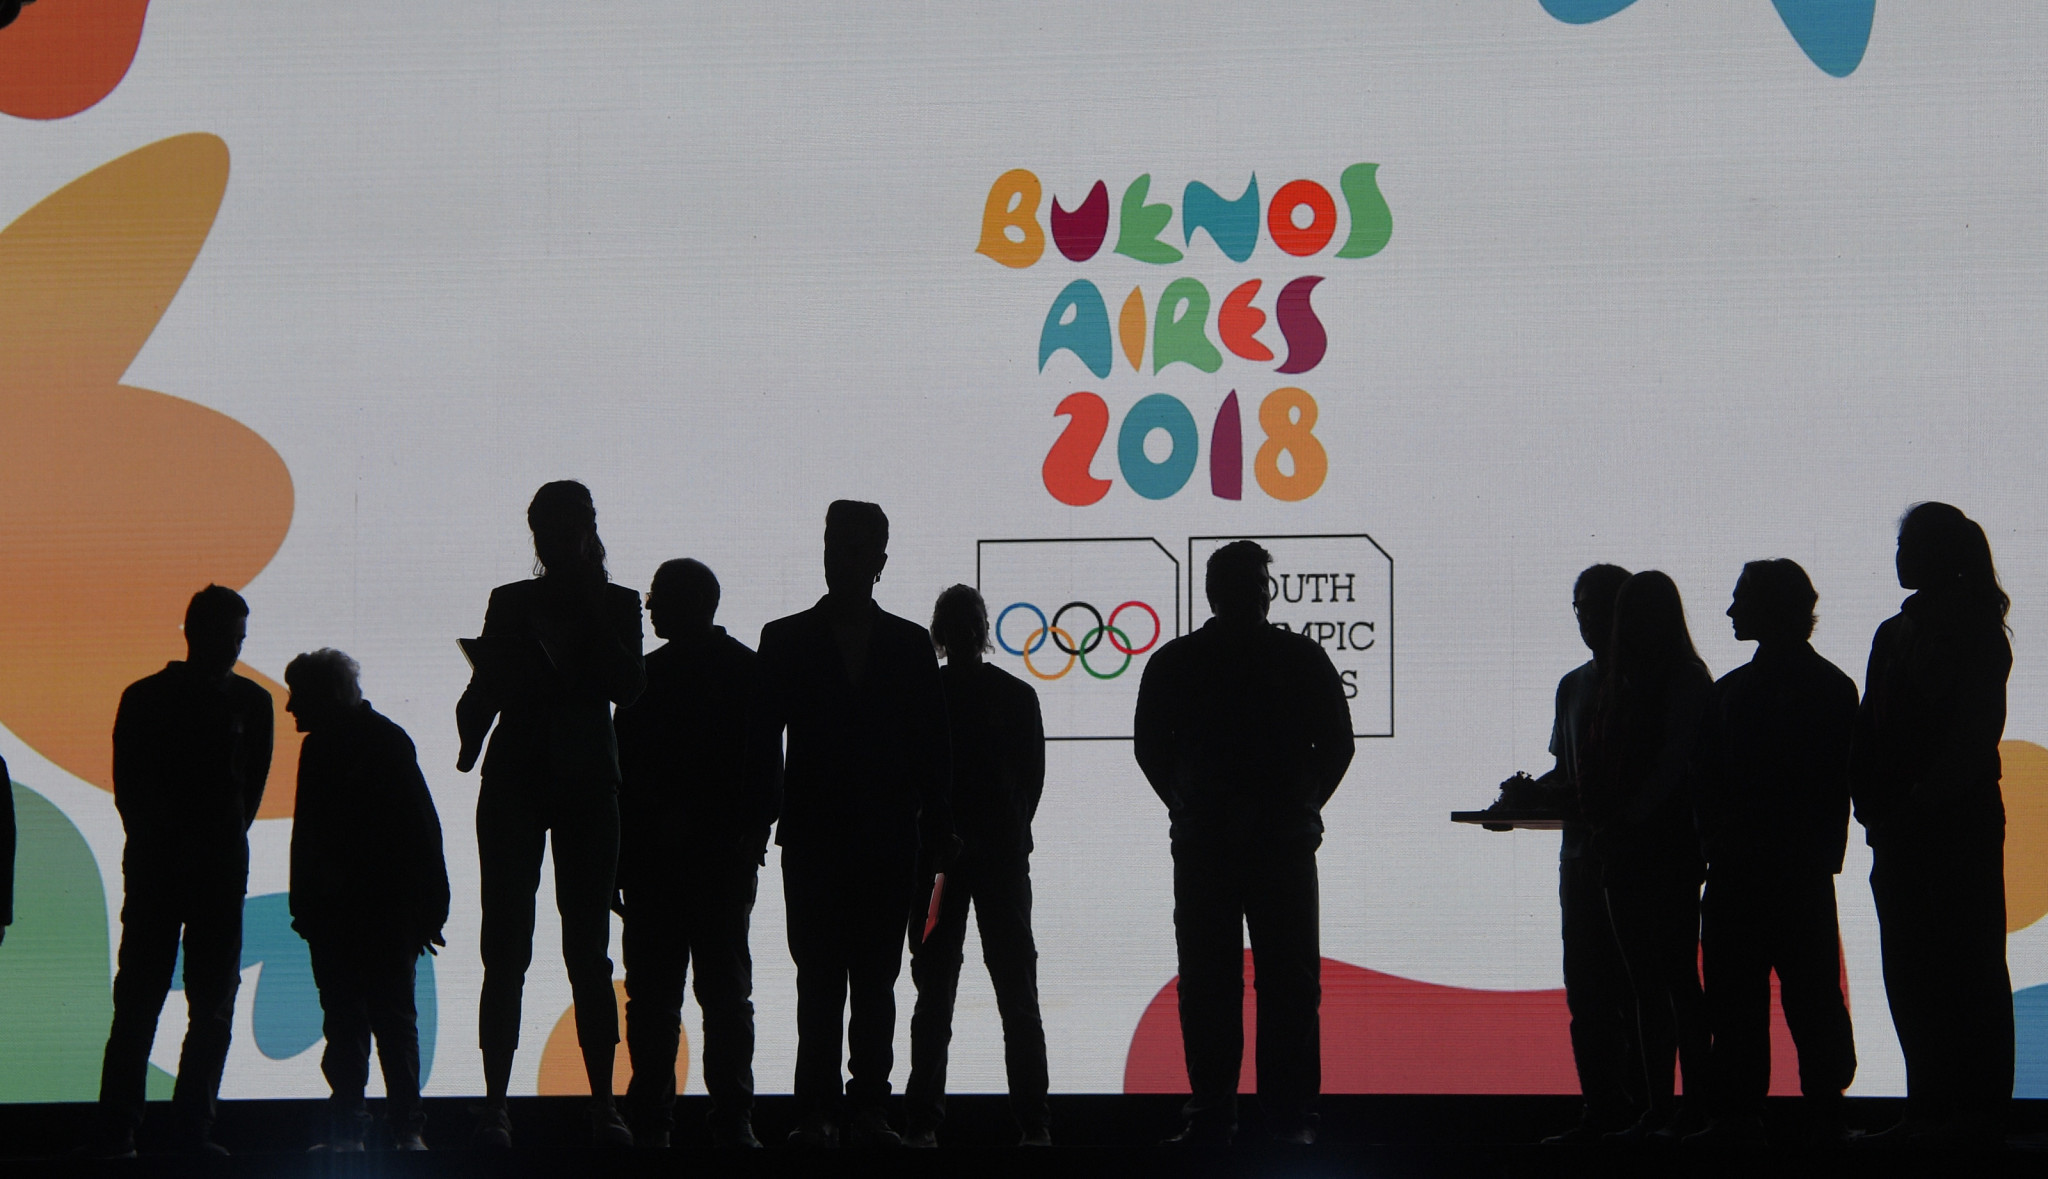 Argentina have shown interest in hosting a Summer Universiade, following their staging of last year's Youth Olympics ©Getty Images